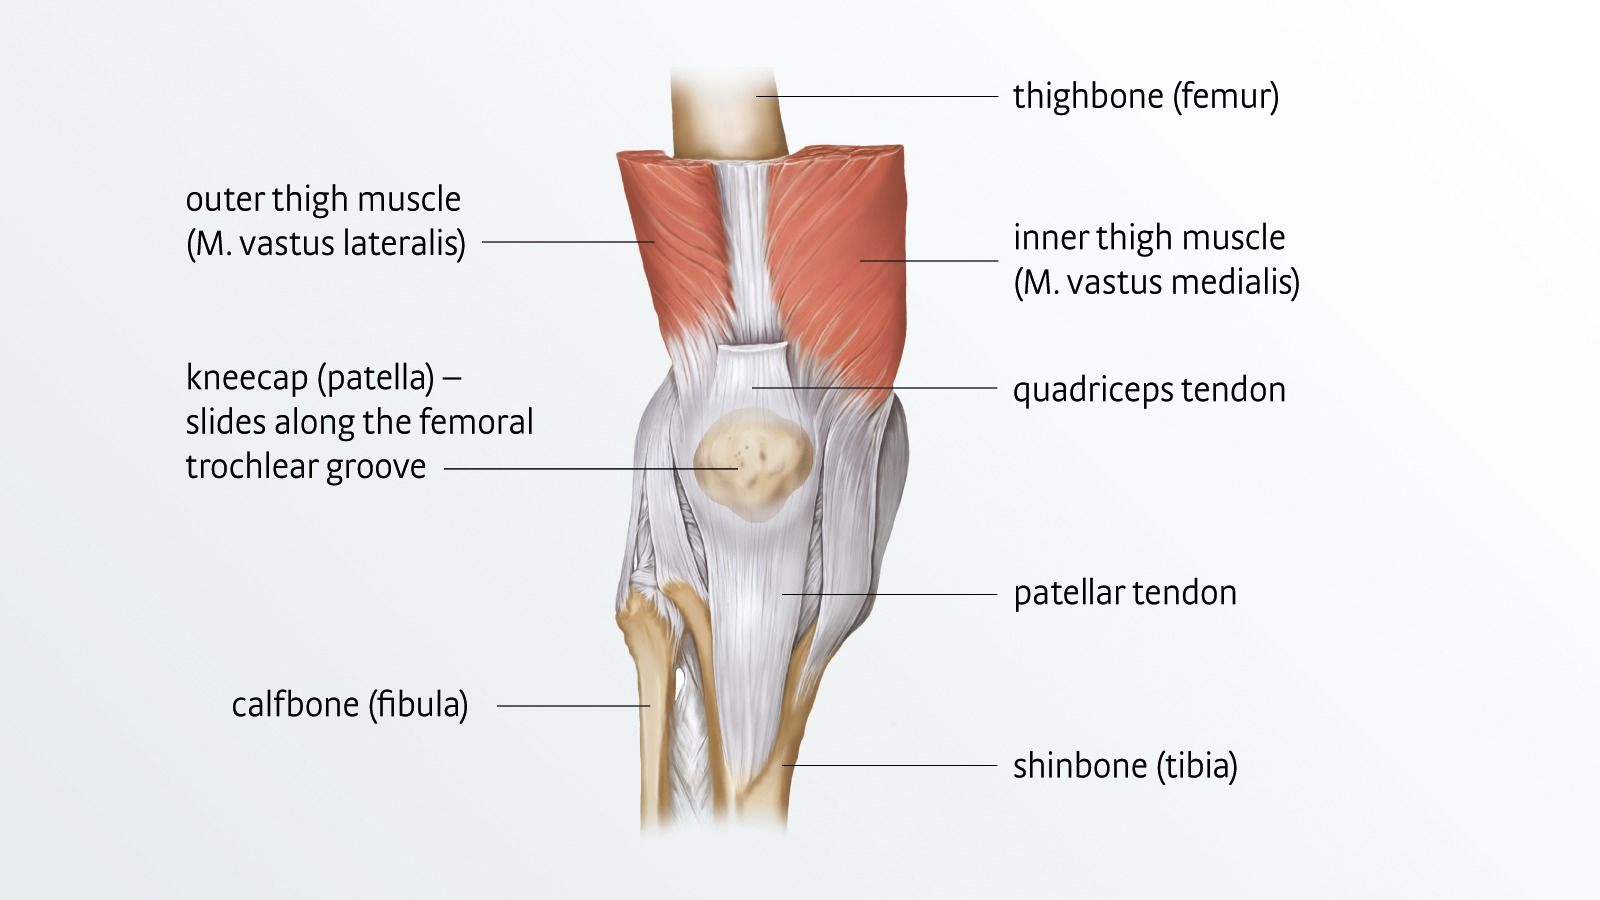 hight resolution of anatomy of the knee joint